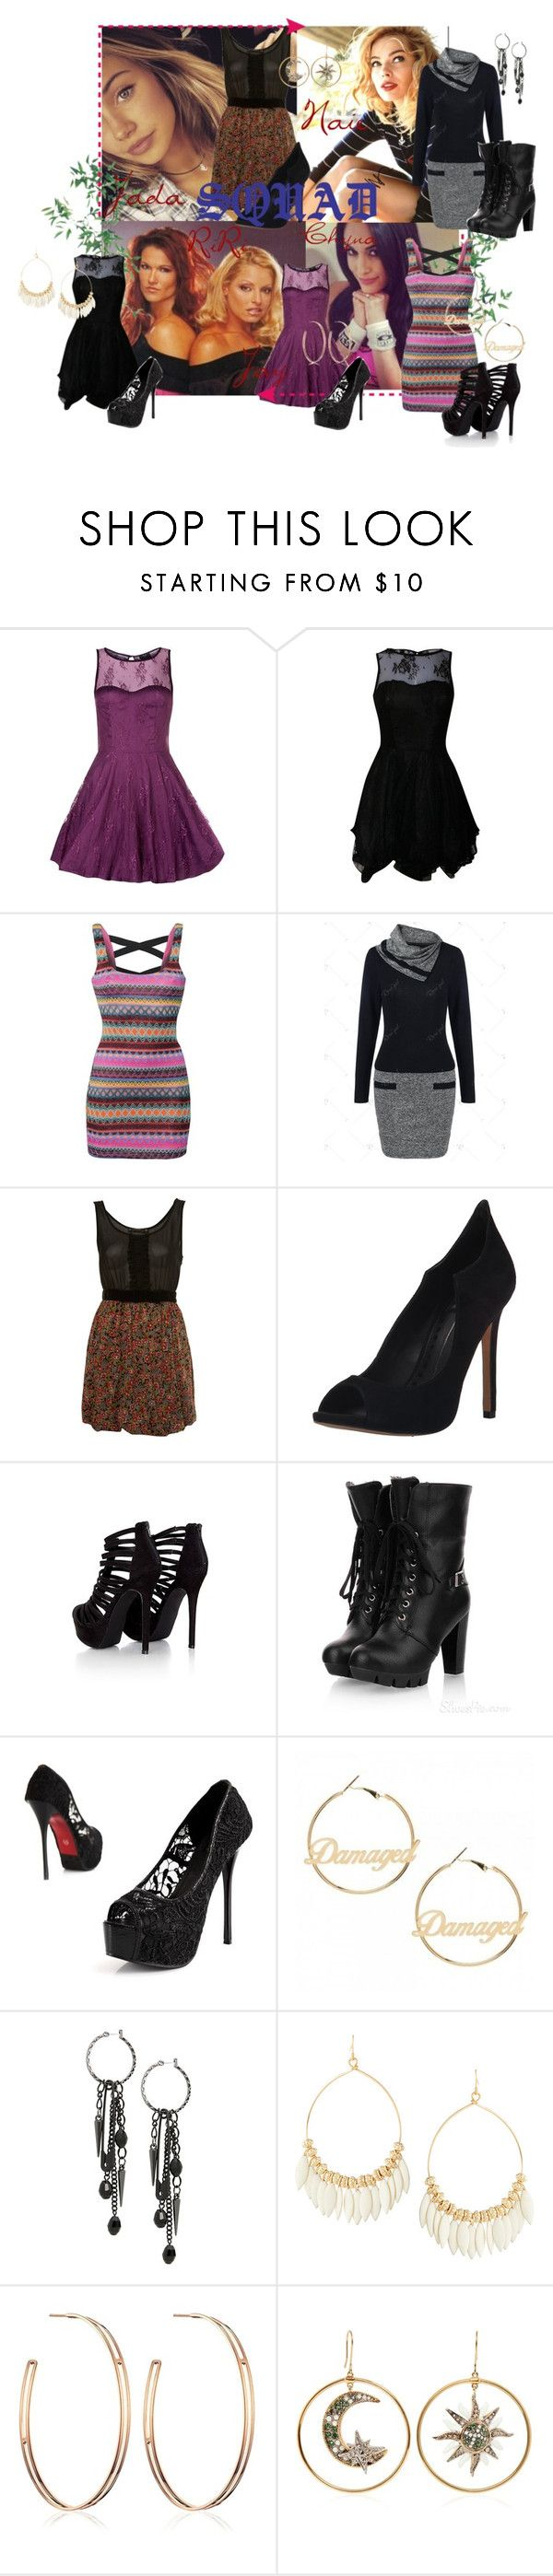 """Squad NAIE, RIRI , JADA,CHYNA & JAY"" by wonderland-junkie ❤ liked on Polyvore featuring WWE, AX Paris, INC International Concepts, Reverse, Miss Selfridge, Dolce Vita, Missguided, Kvoll, Lane Bryant and Fragments"